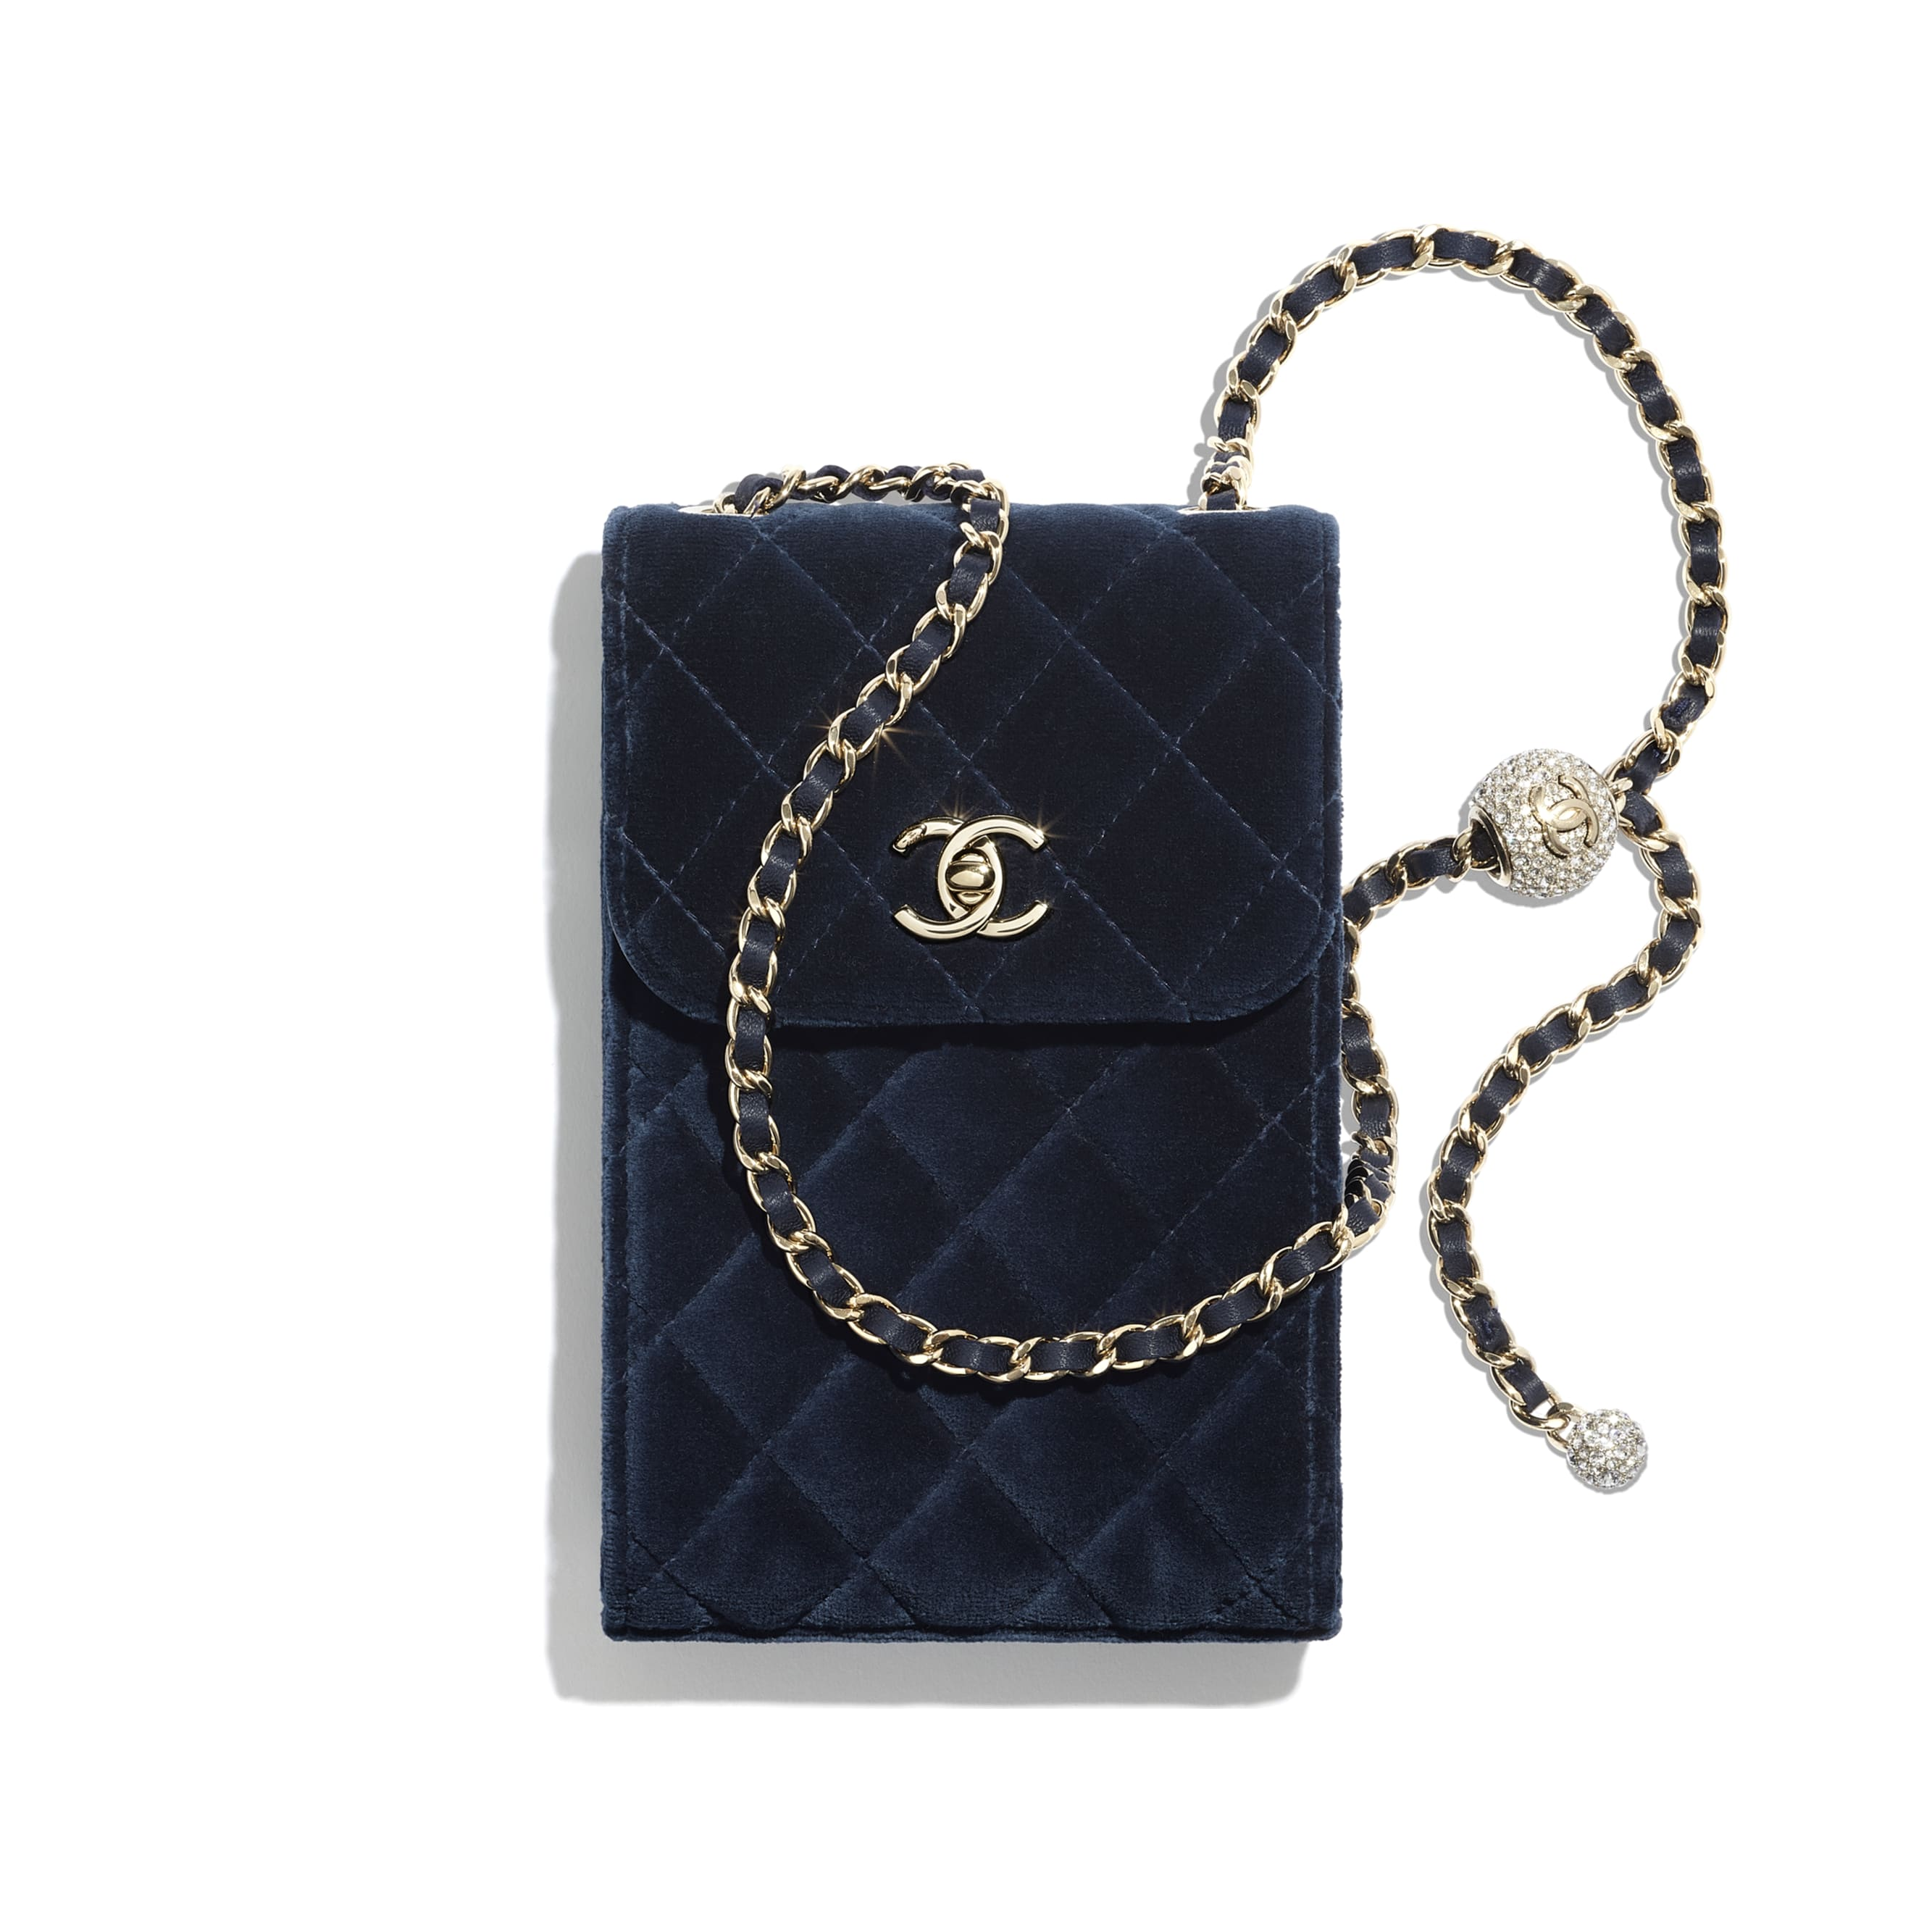 Phone Holder with Chain - Navy Blue - Velvet, Strass & Gold-Tone Metal - CHANEL - Default view - see standard sized version